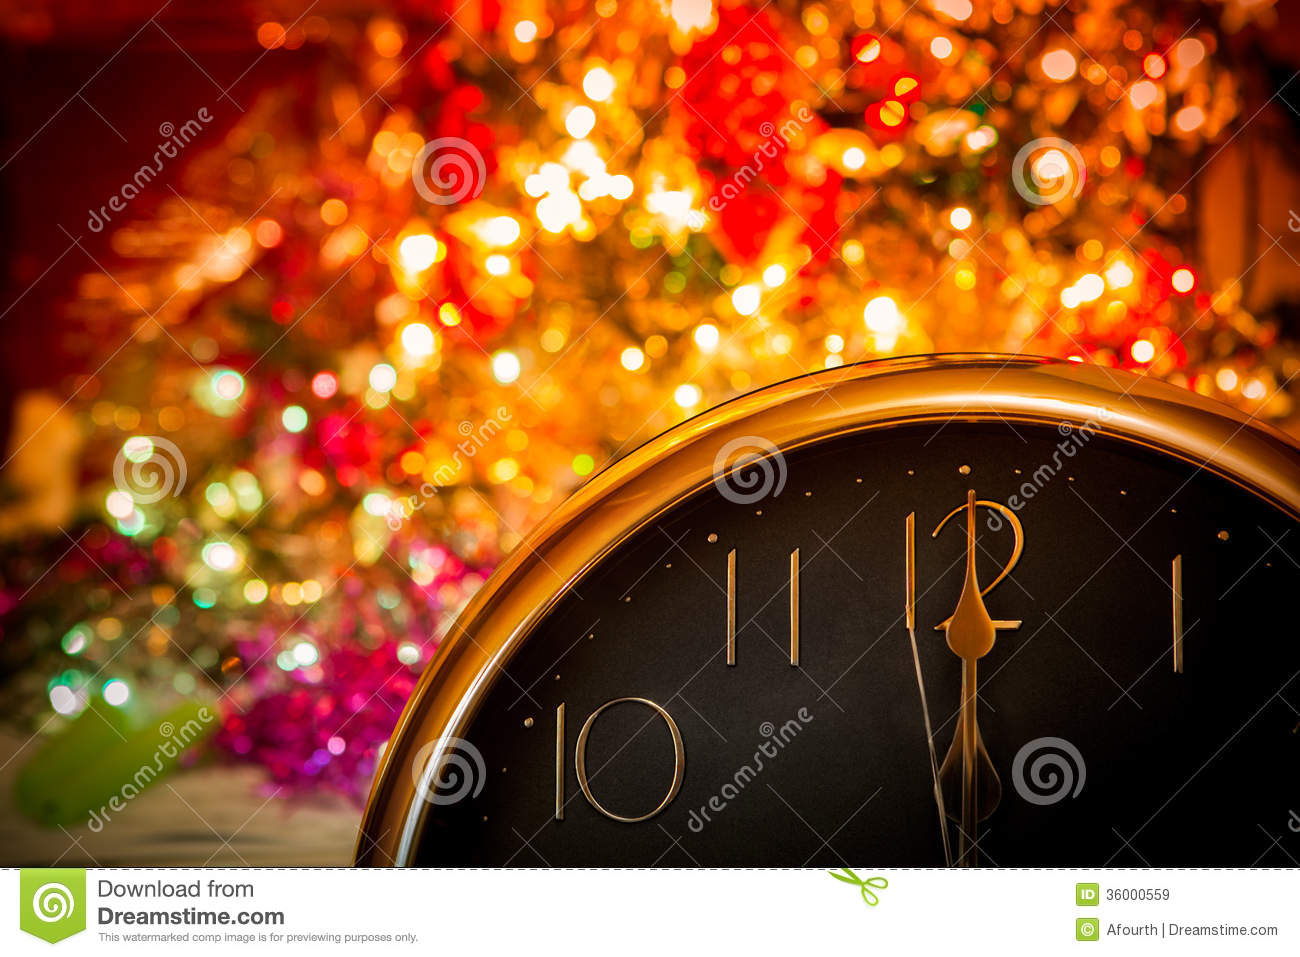 background with ice clock. new year clockgif. new years eve countdown ...